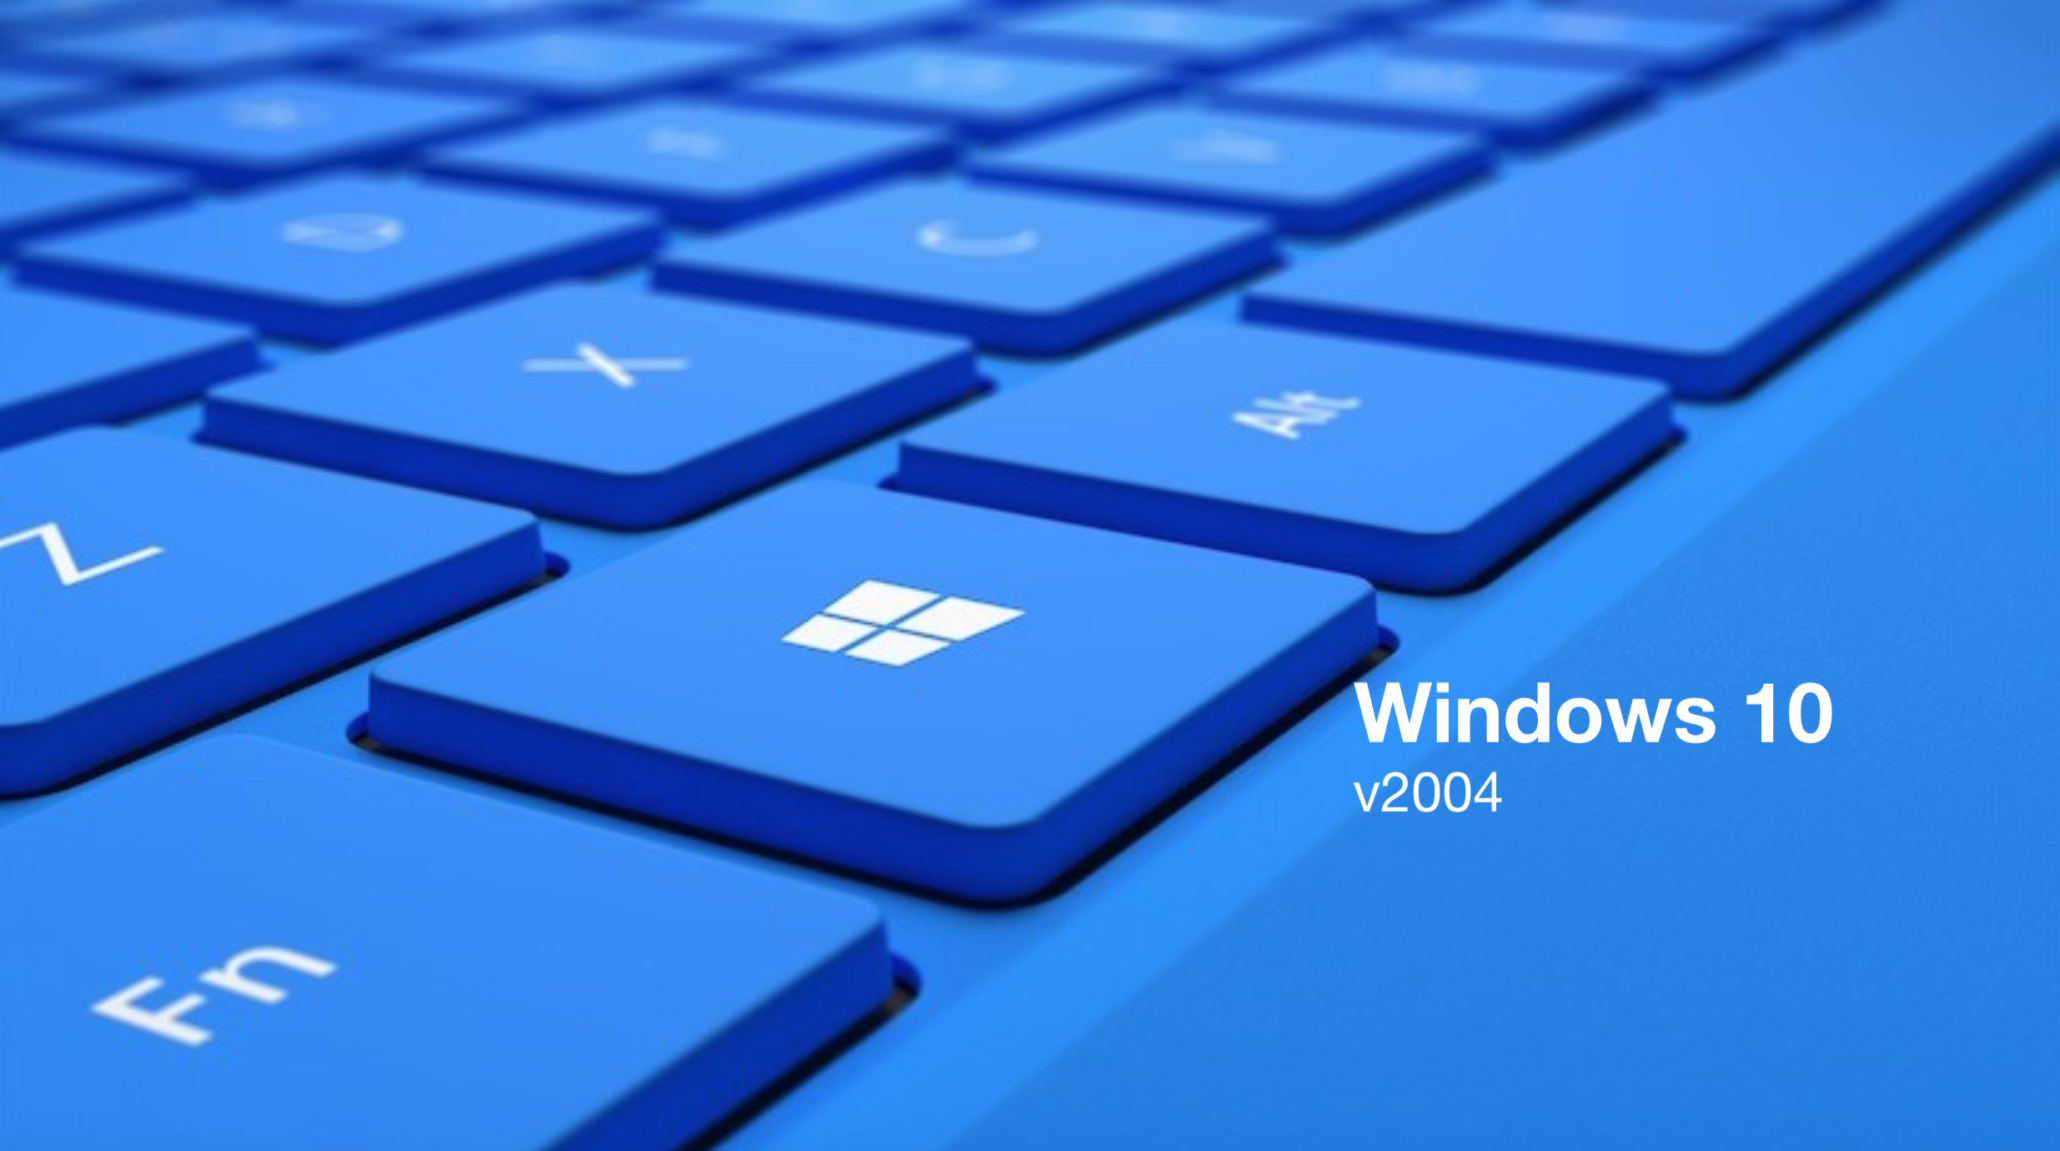 Windows 10 update version 2004 iso download